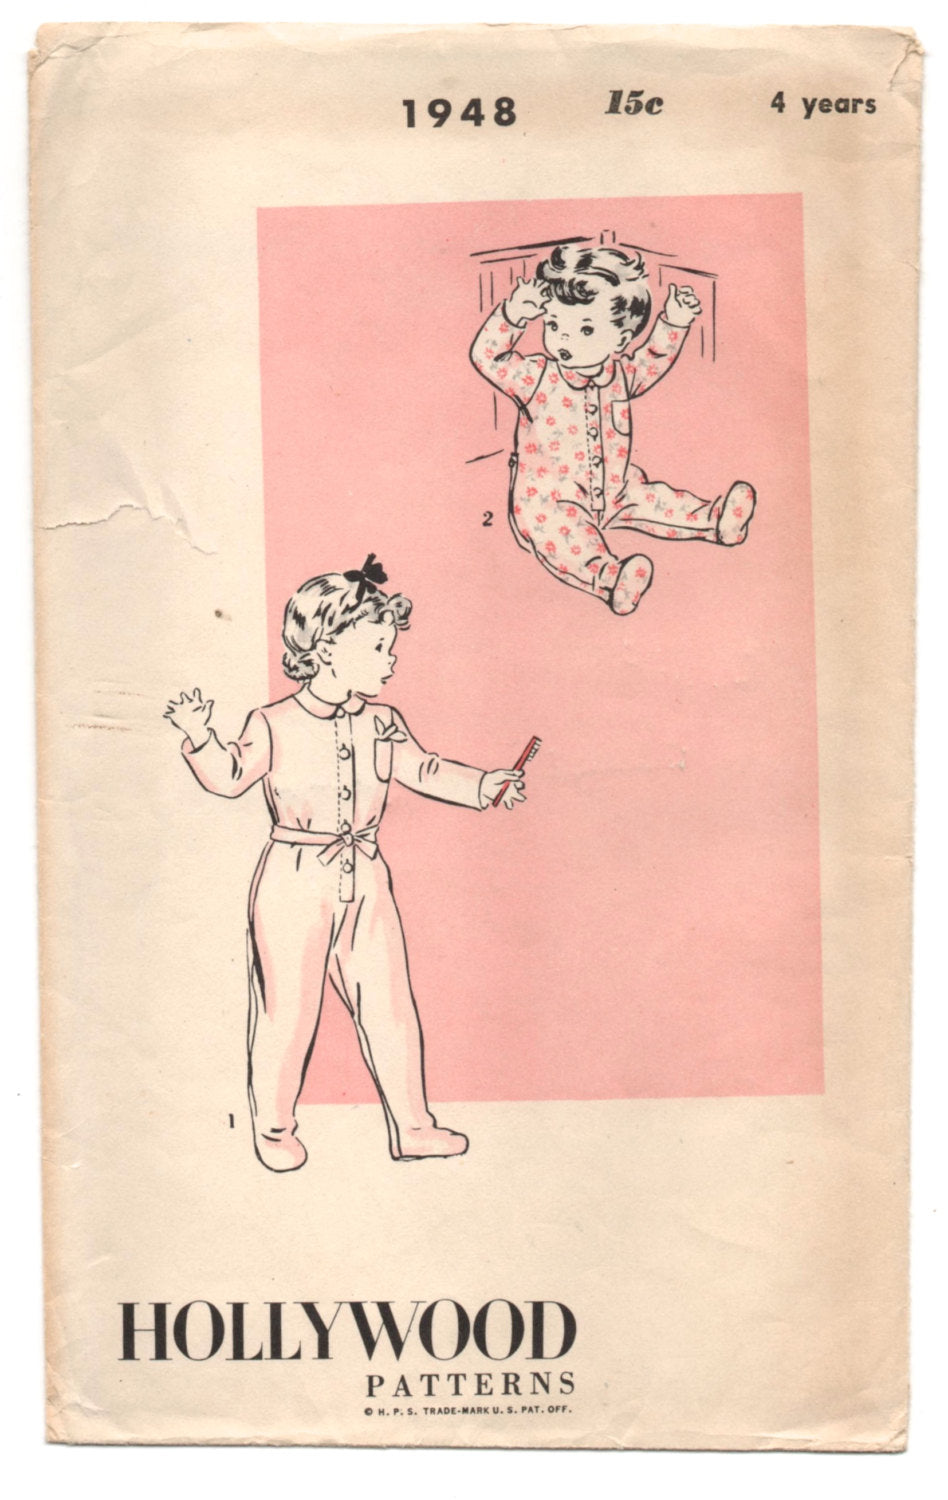 1940's Hollywood Child's Pajama pattern - 4 years - No. 1948